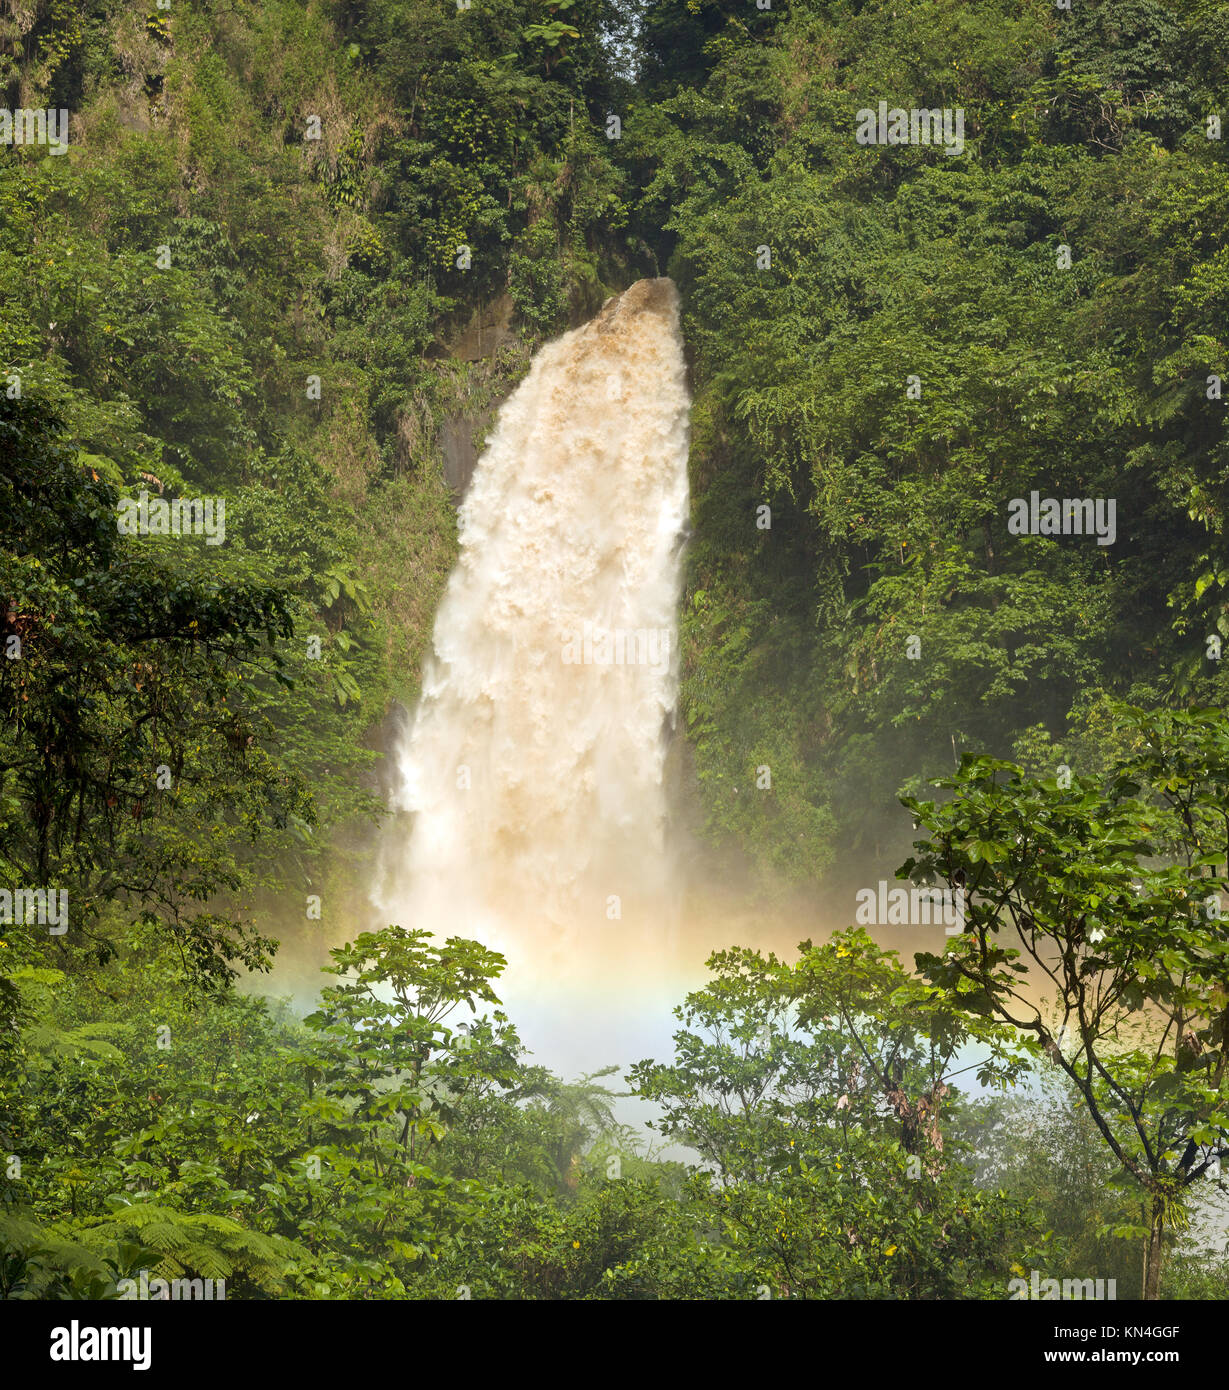 Trafalgar Falls in a green jungle environnement with tree ferns after a heavy rainfall - Stock Image